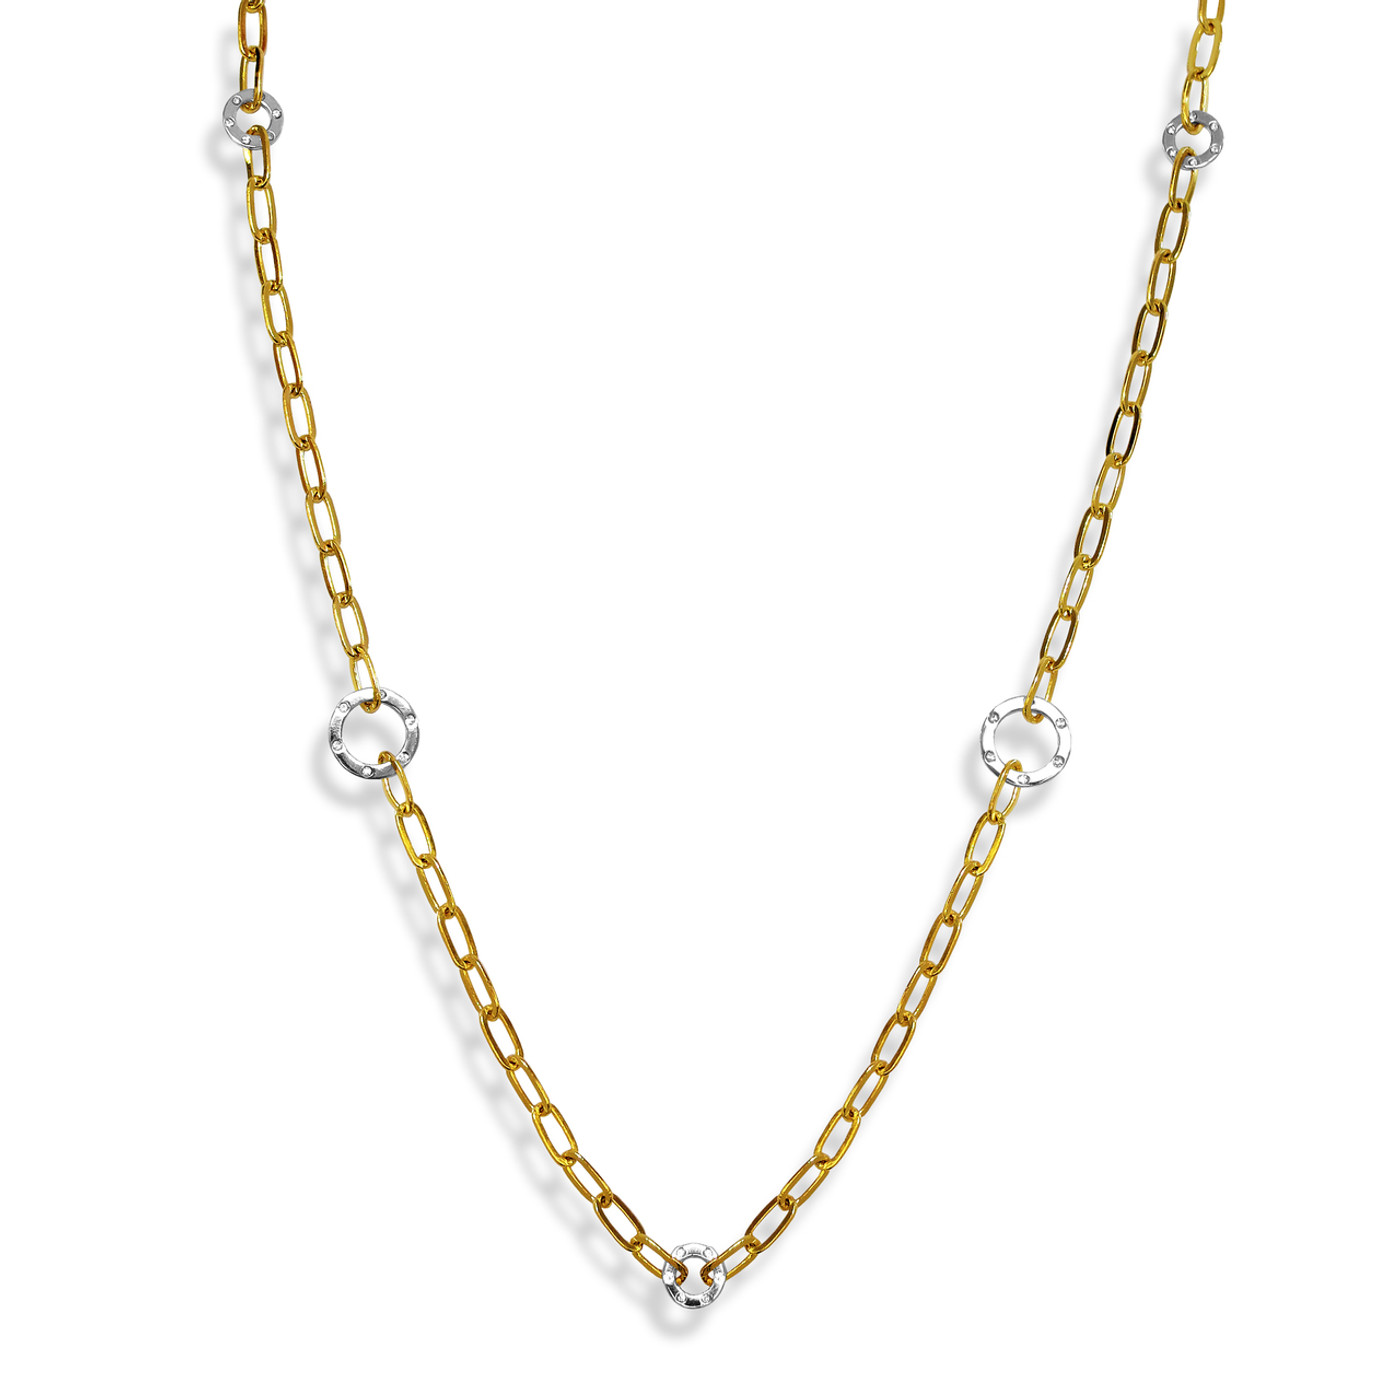 Grand Two -Tone Long Chain Necklace